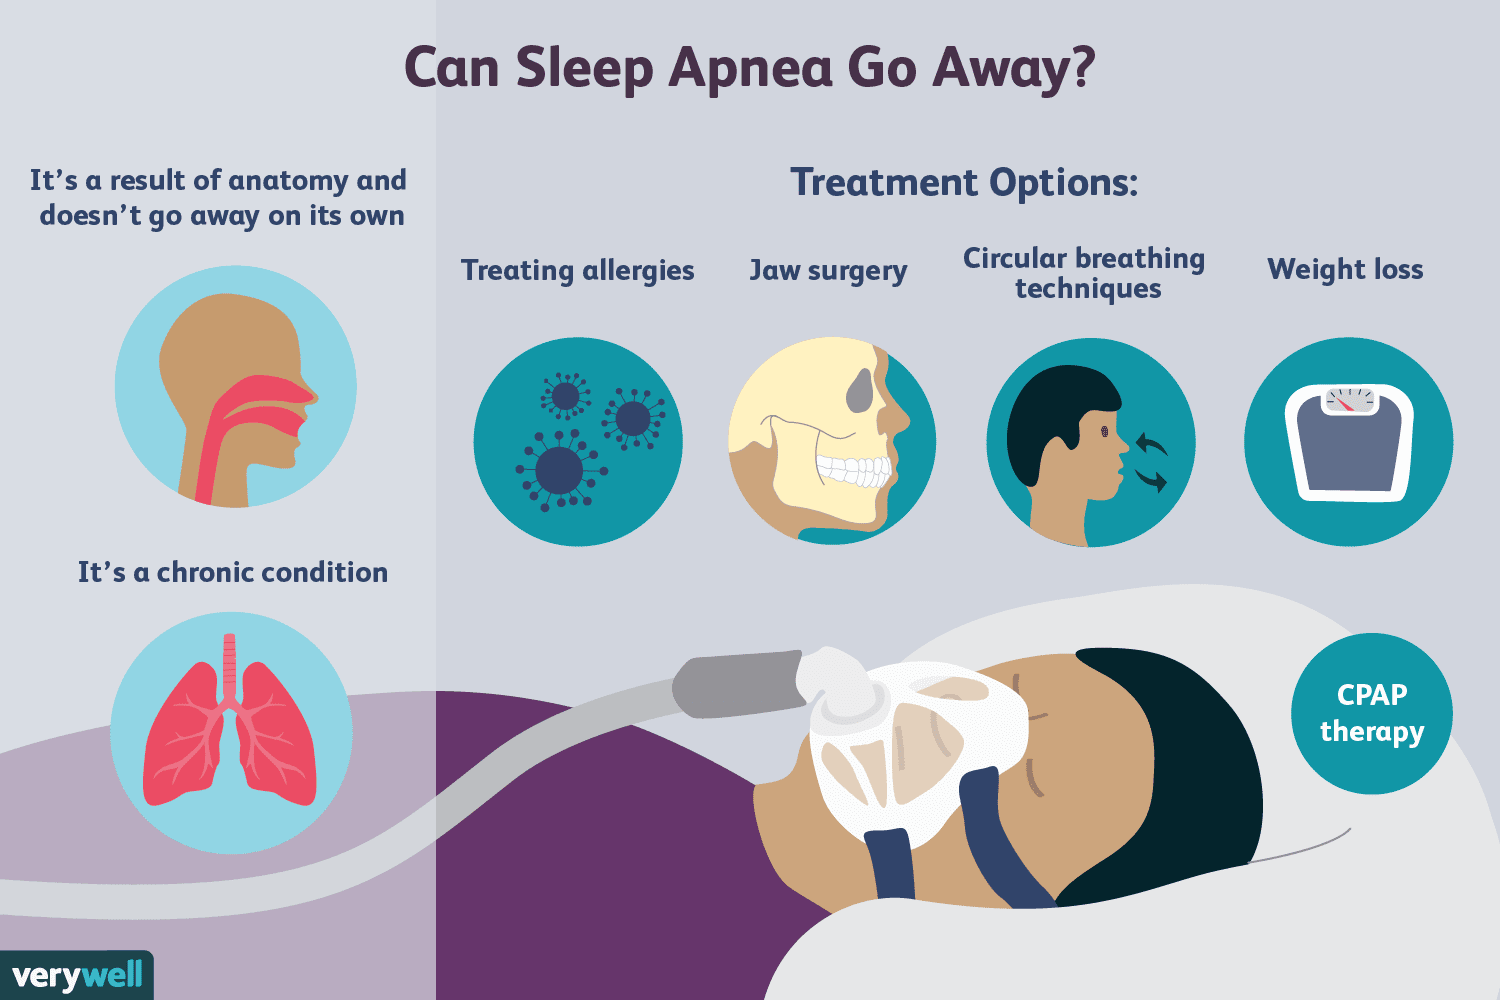 Does Sleep Apnea Go Away? Risk Factors and Prognosis